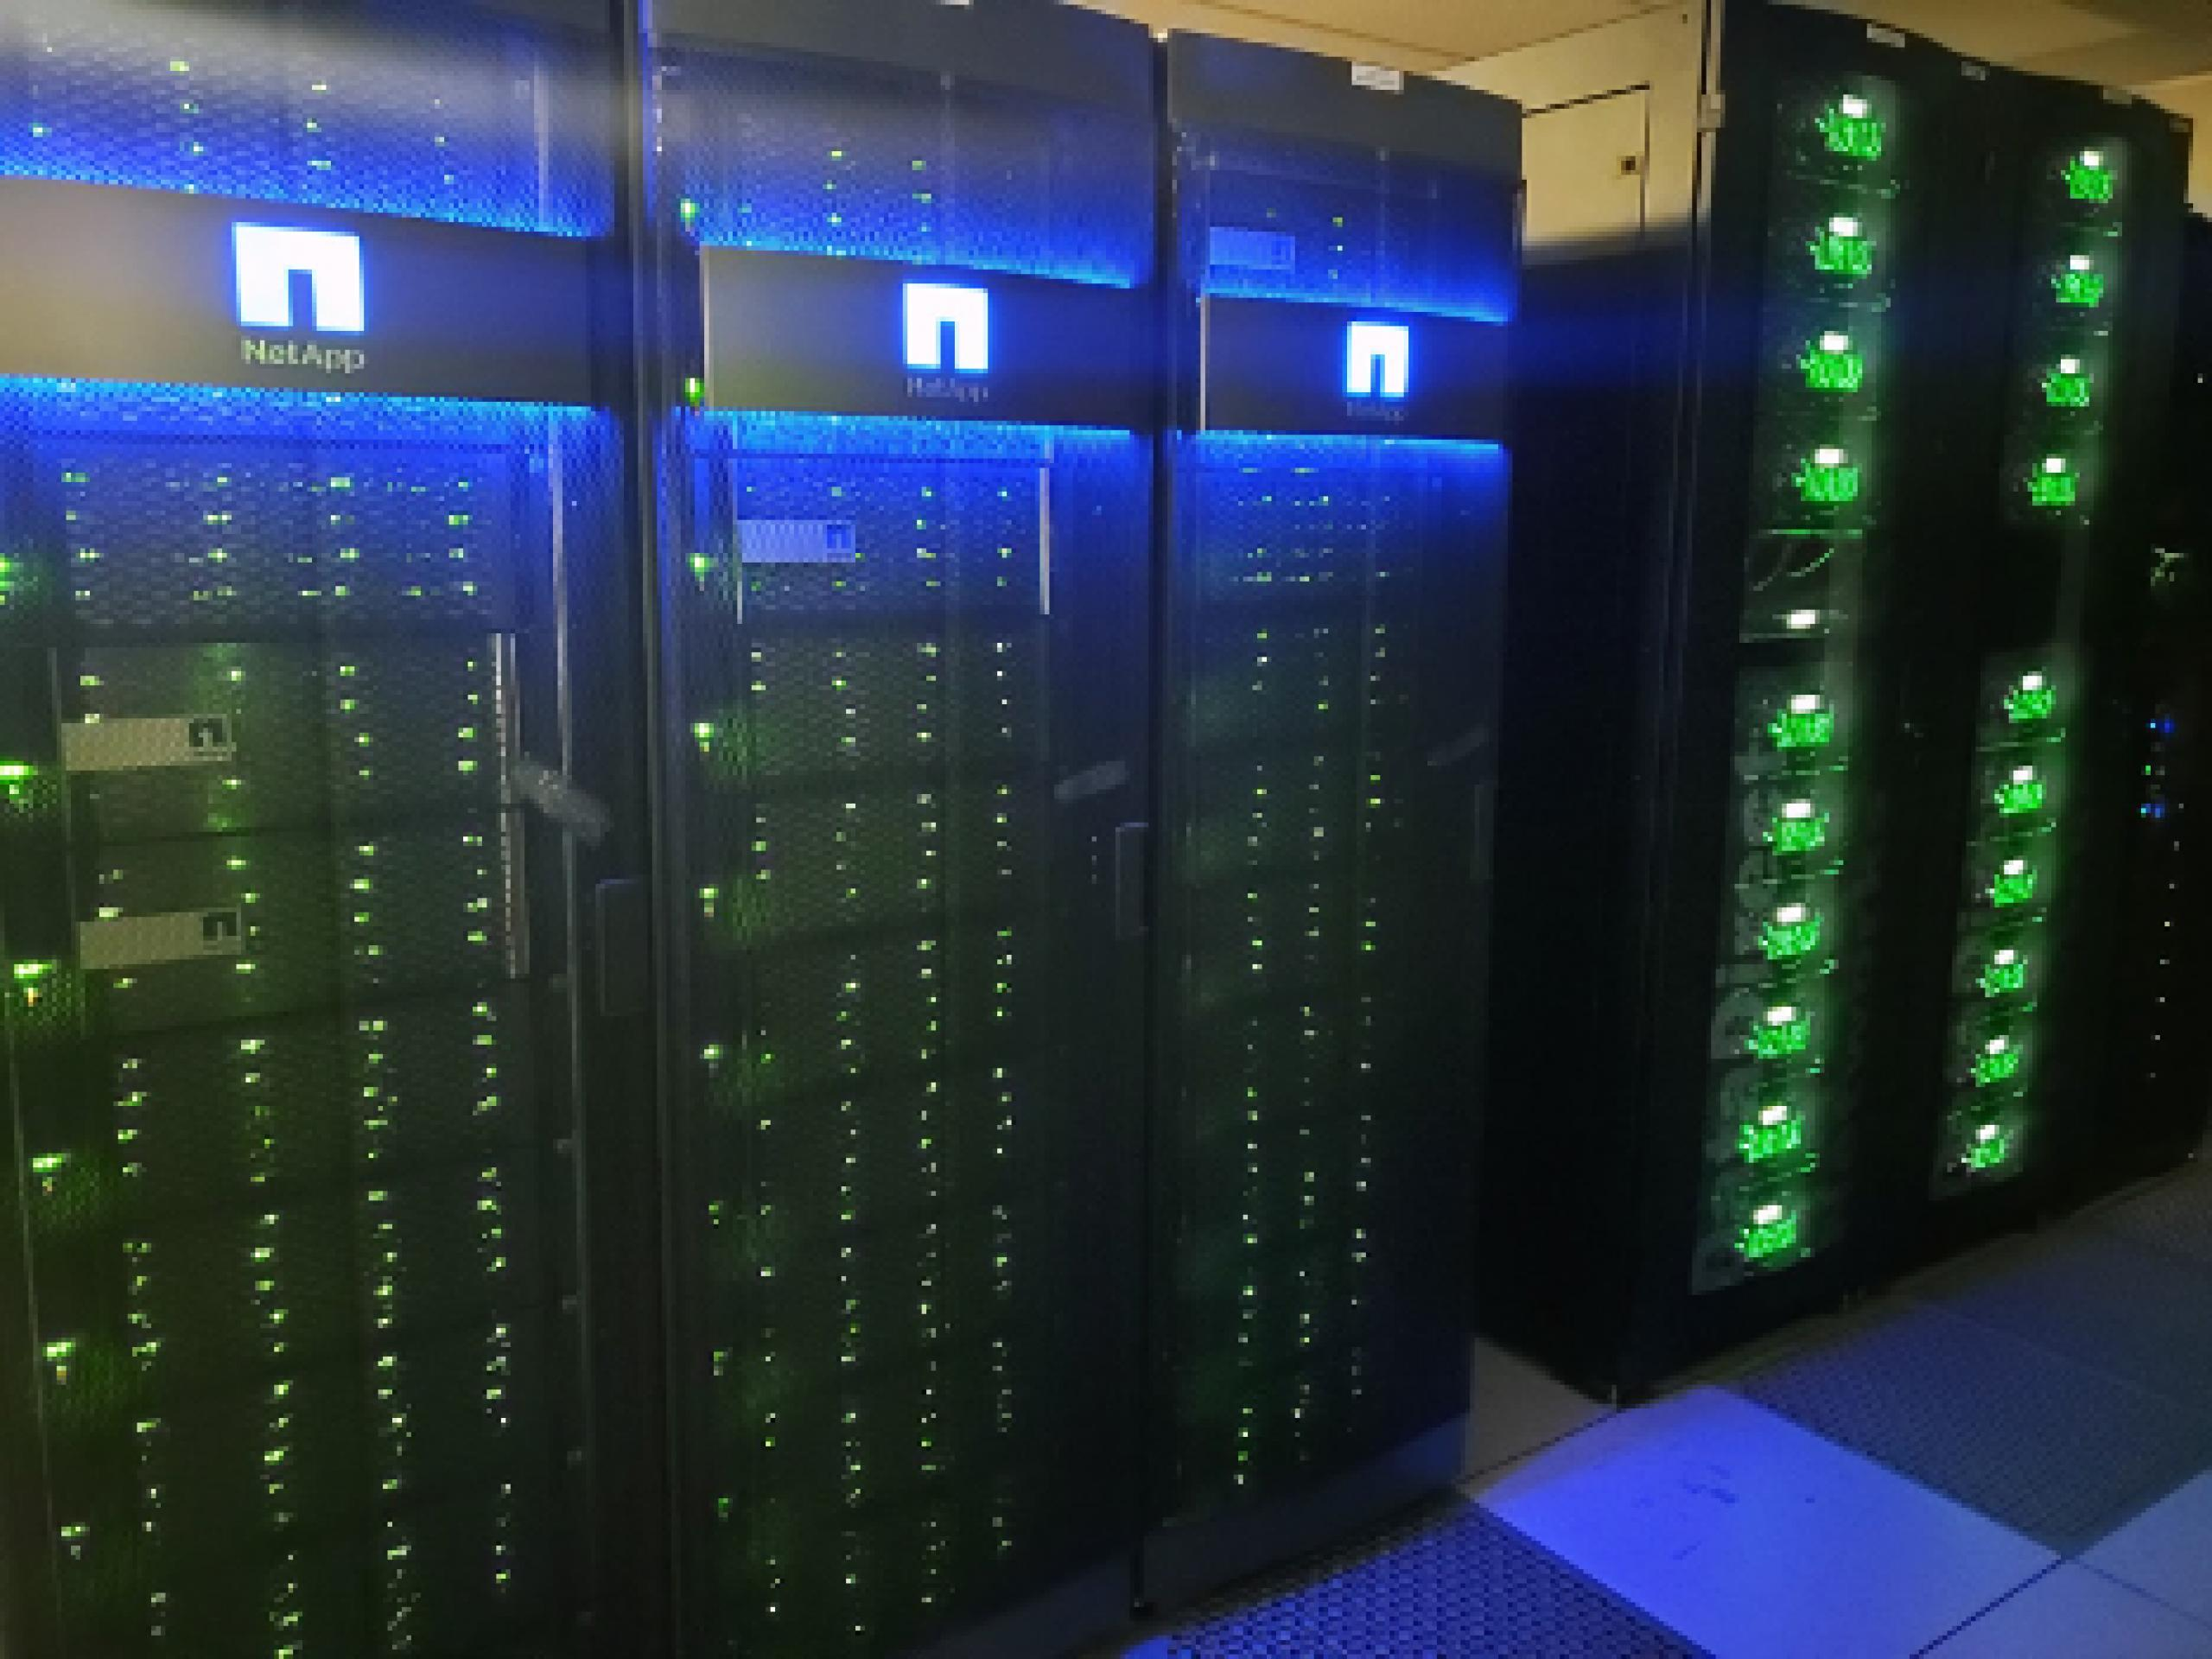 Photo of large computer servers with blue and green lights